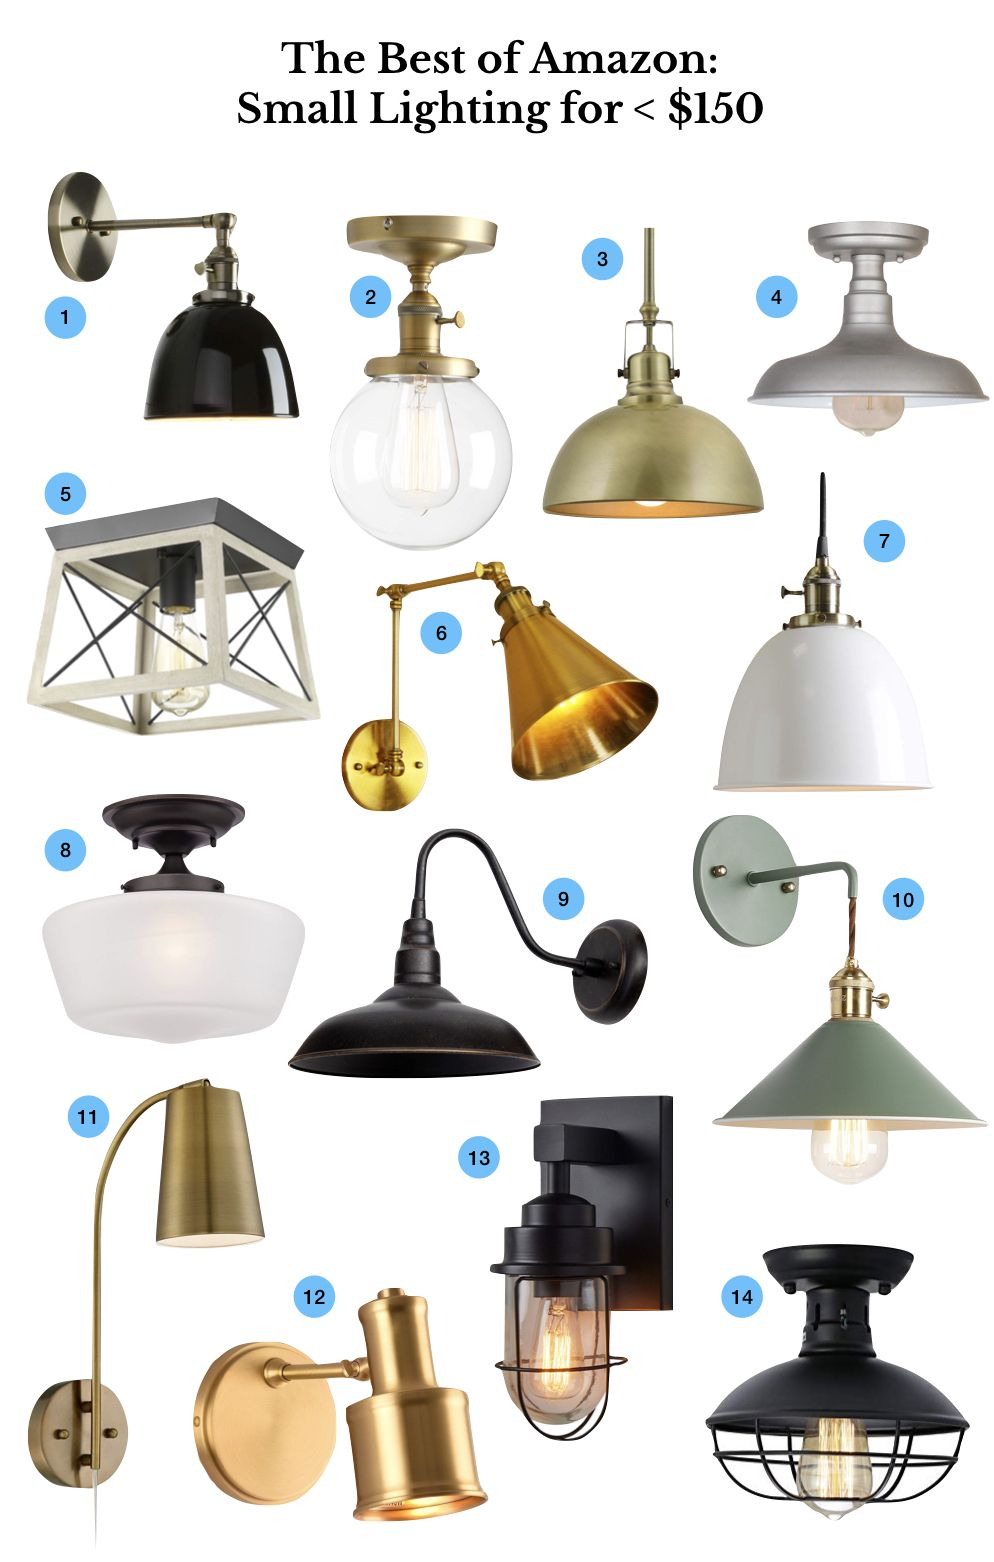 Cheap Light Fittings The Best Inexpensive Small Lighting On Amazon In 2019 Lighting